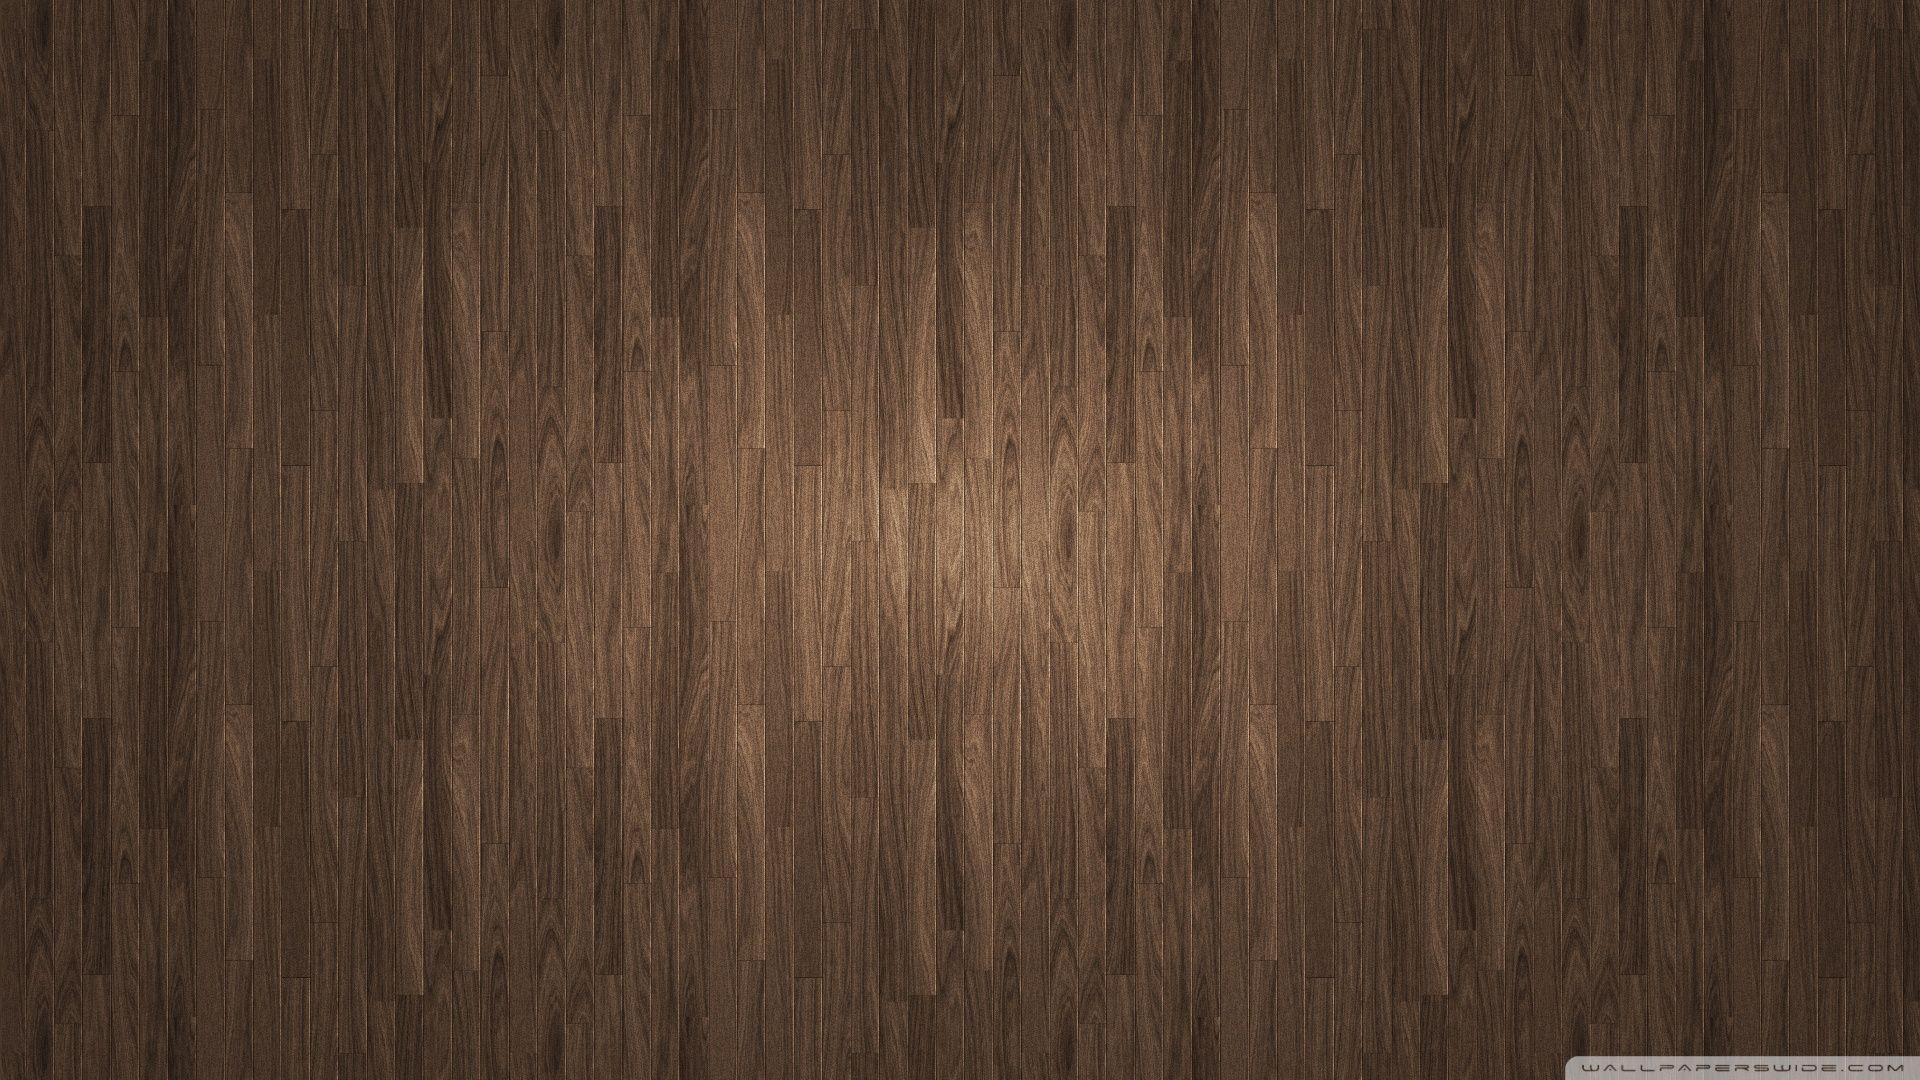 Hd Wood Backgrounds Wallpaper Cave